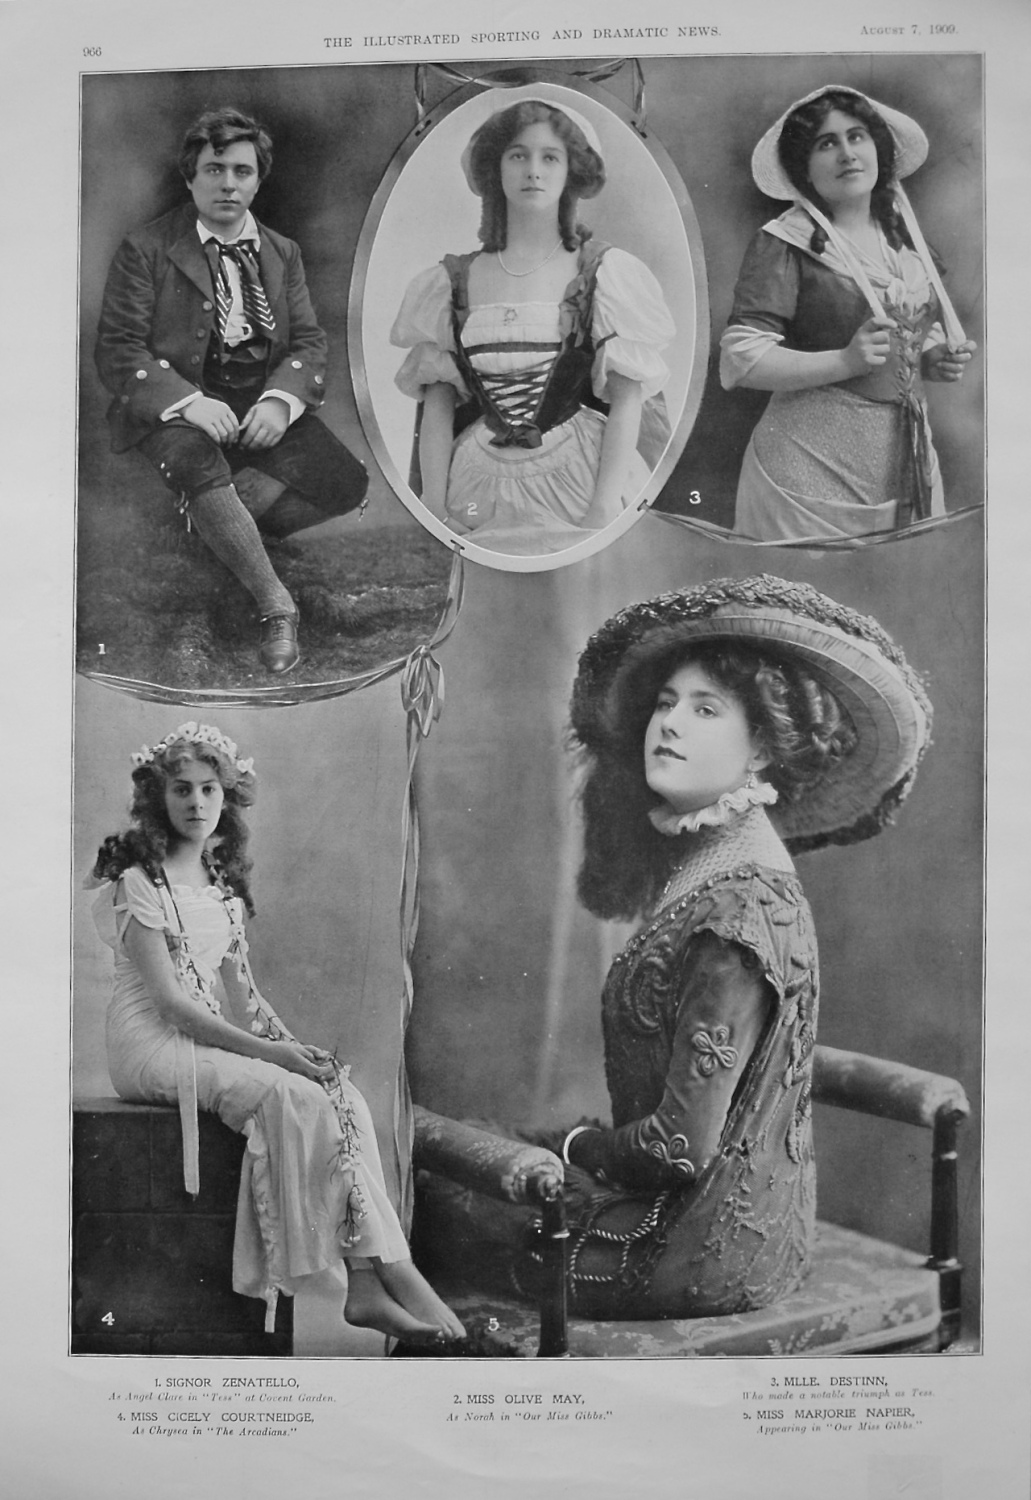 Actresses from the Stage. August 7th 1909.